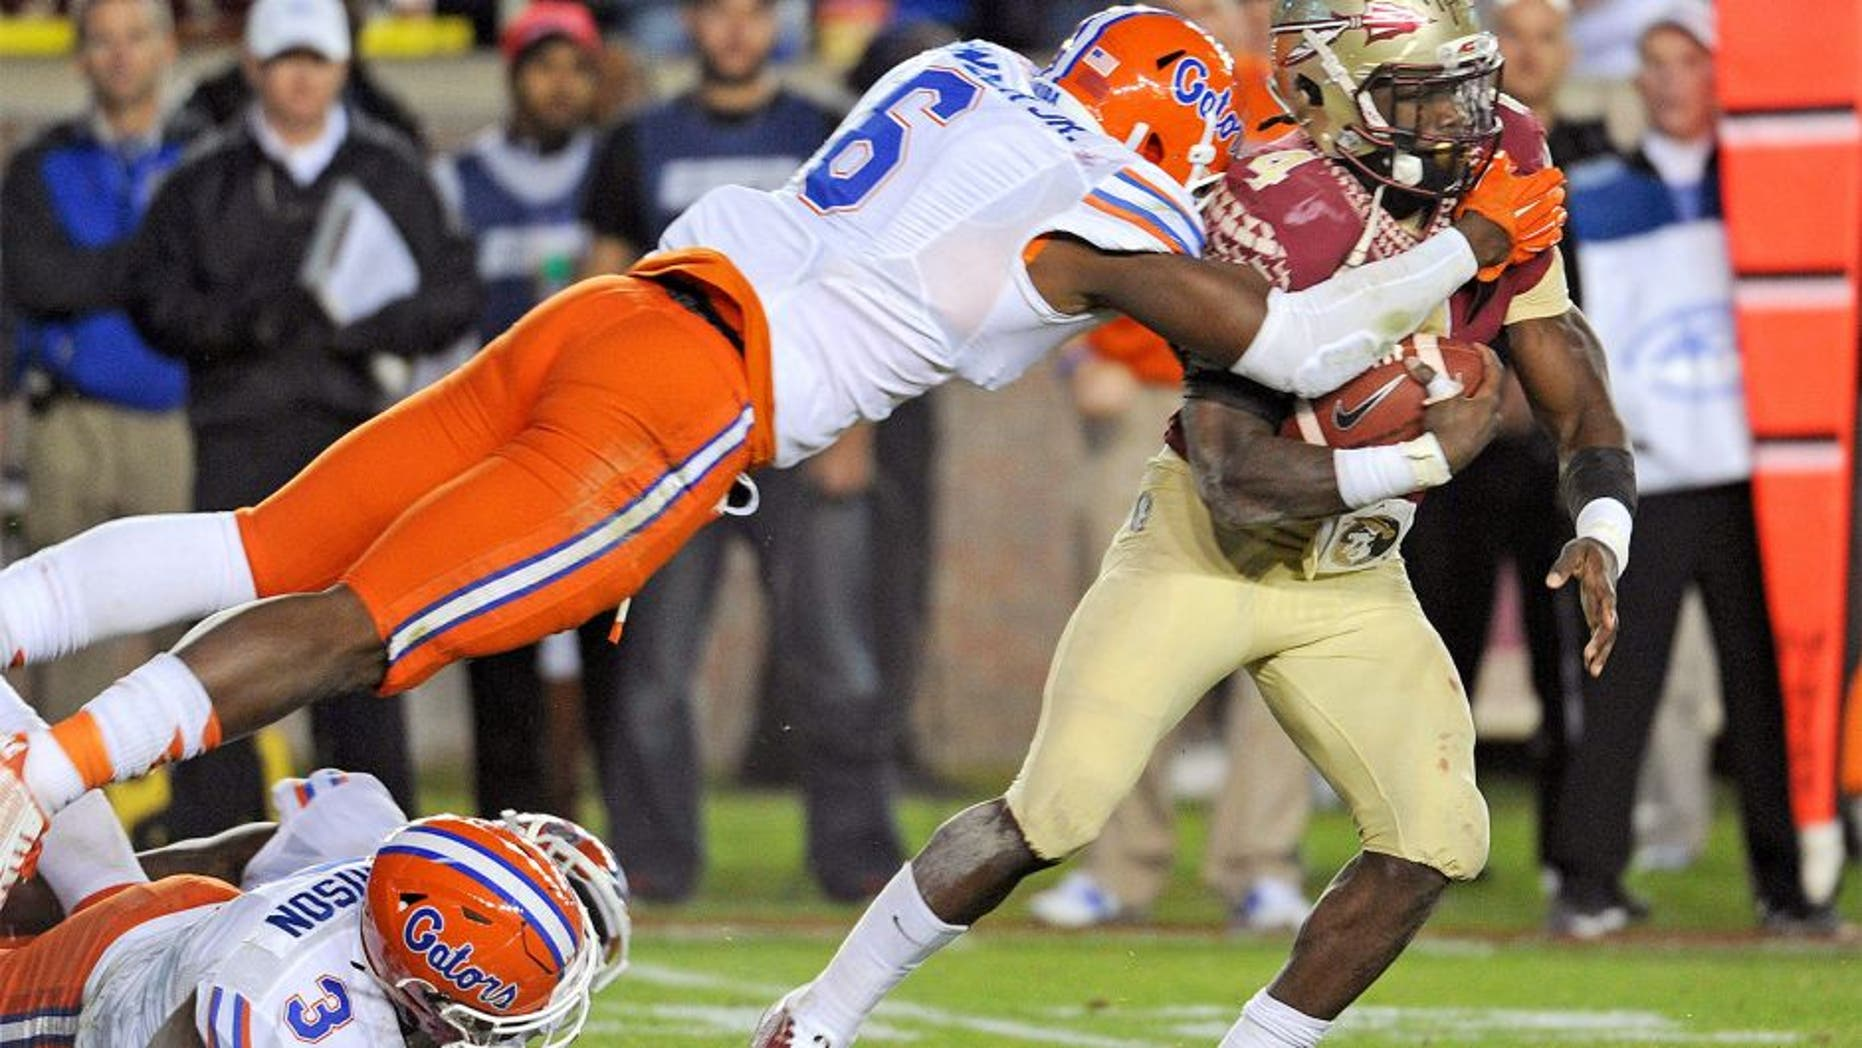 Nov 29, 2014; Tallahassee, FL, USA; Florida State Seminoles running back Dalvin Cook (4) runs the ball past Florida Gators defensive lineman Dante Fowler Jr. (6) and linebacker Antonio Morrison (3) during the game at Doak Campbell Stadium. Mandatory Credit: Melina Vastola-USA TODAY Sports